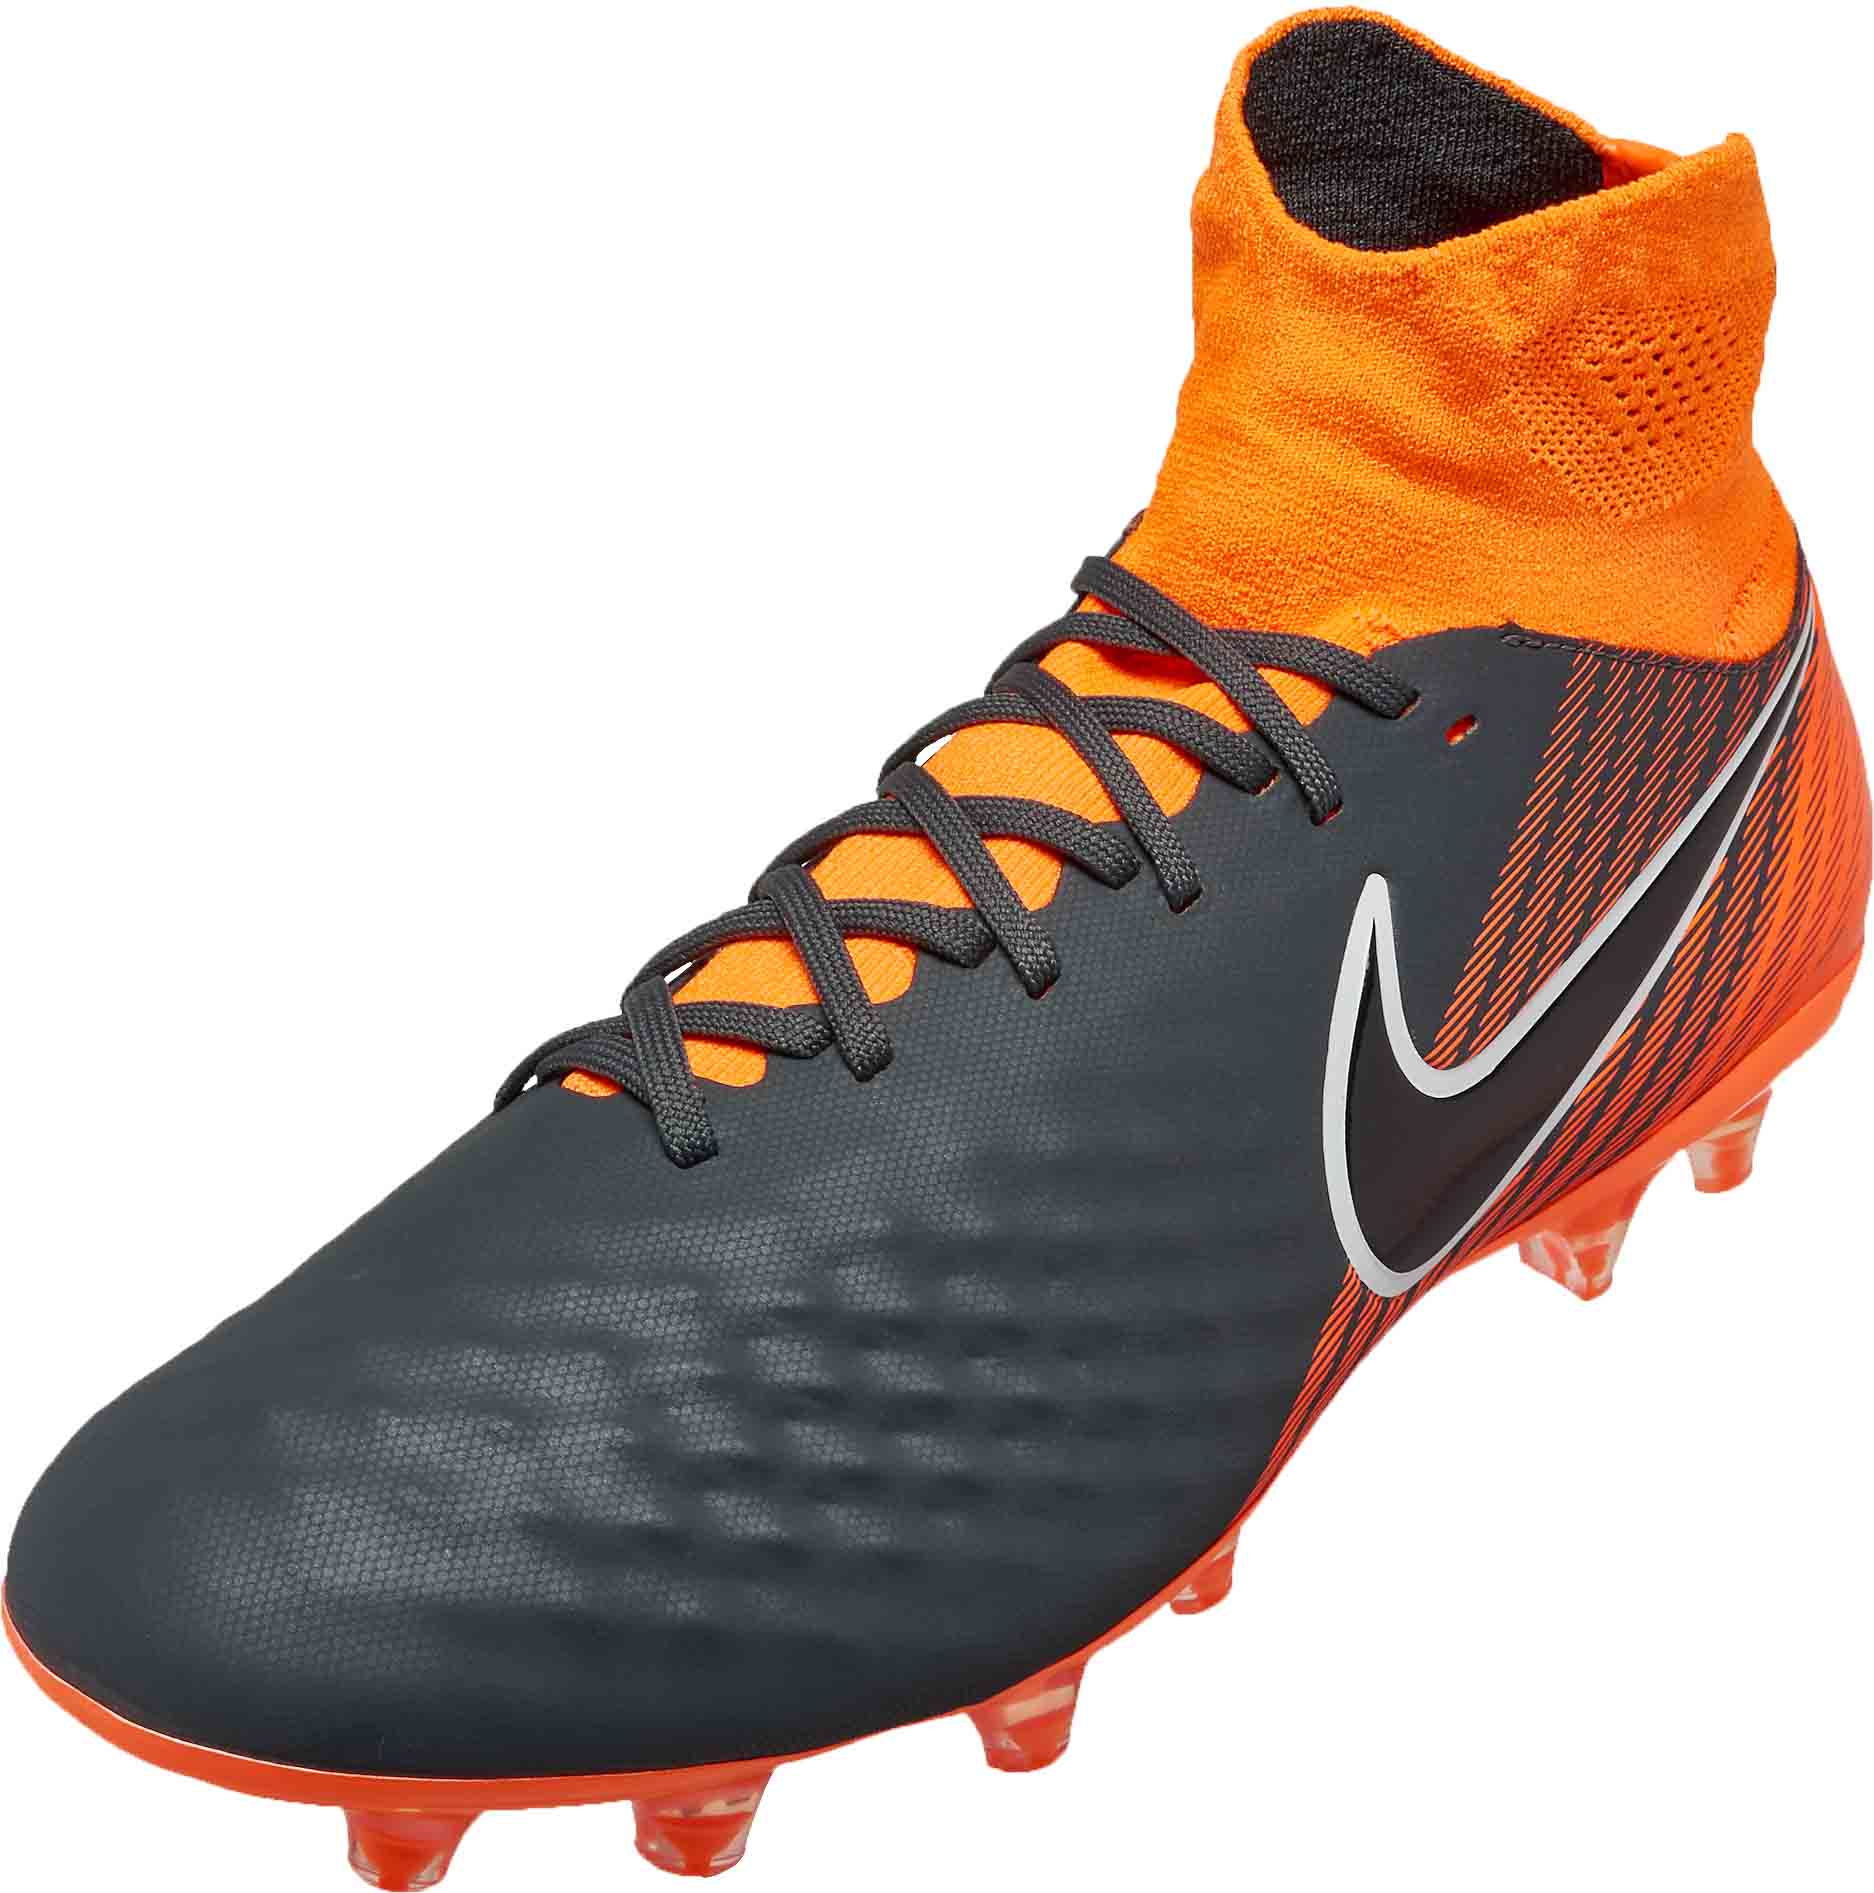 Nike Magista Obra 2 Pro DF FG - Dark Grey/Total Orange ...